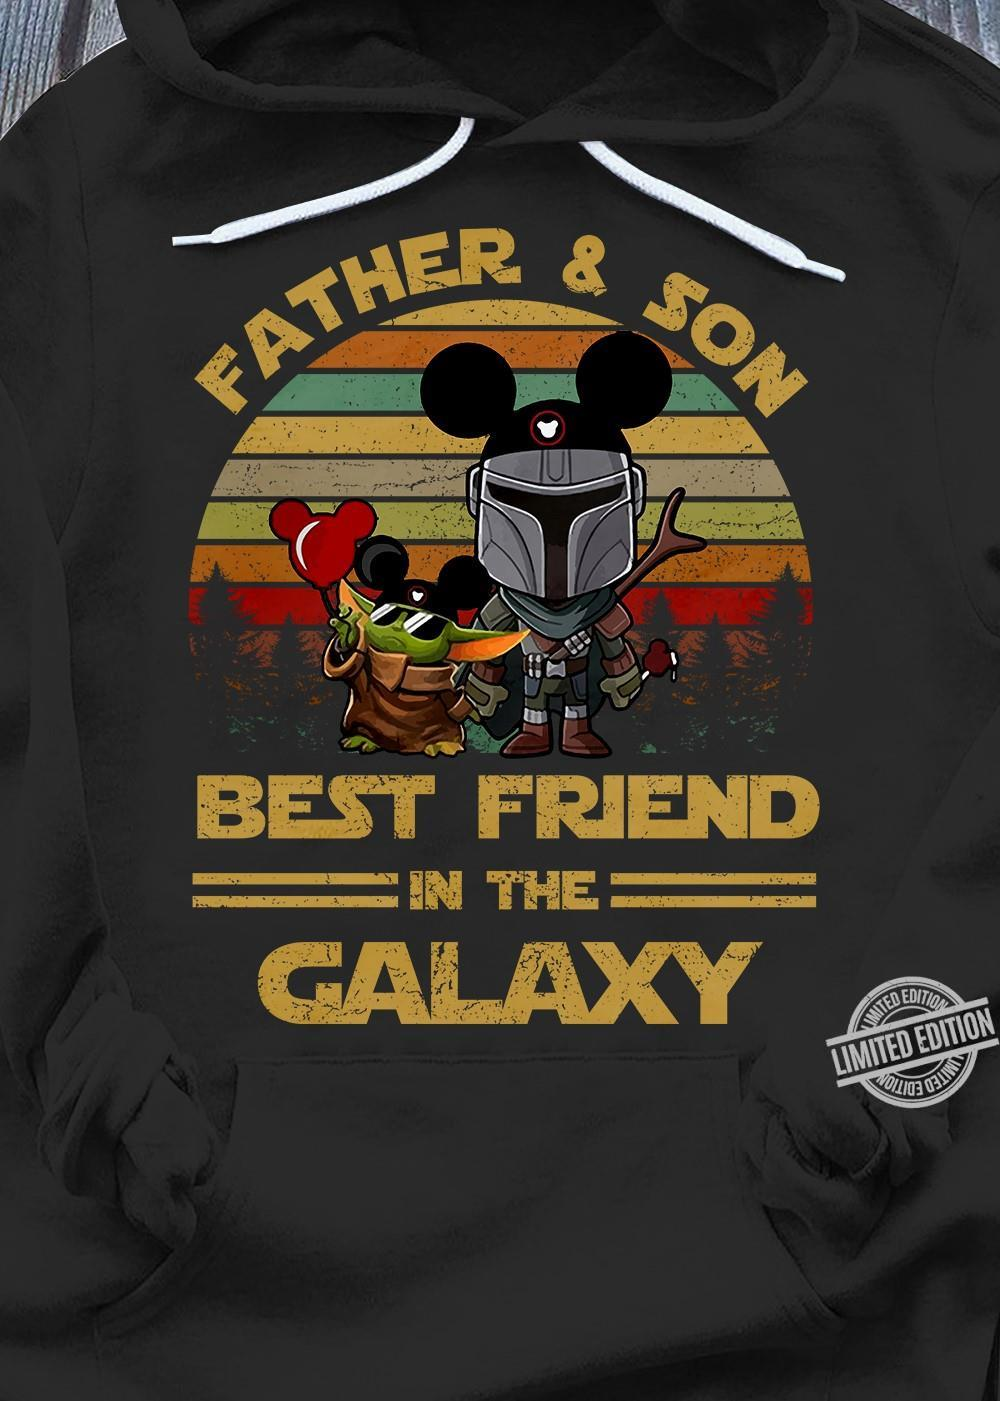 Father & Son Best Friend In The Galaxy Shirt